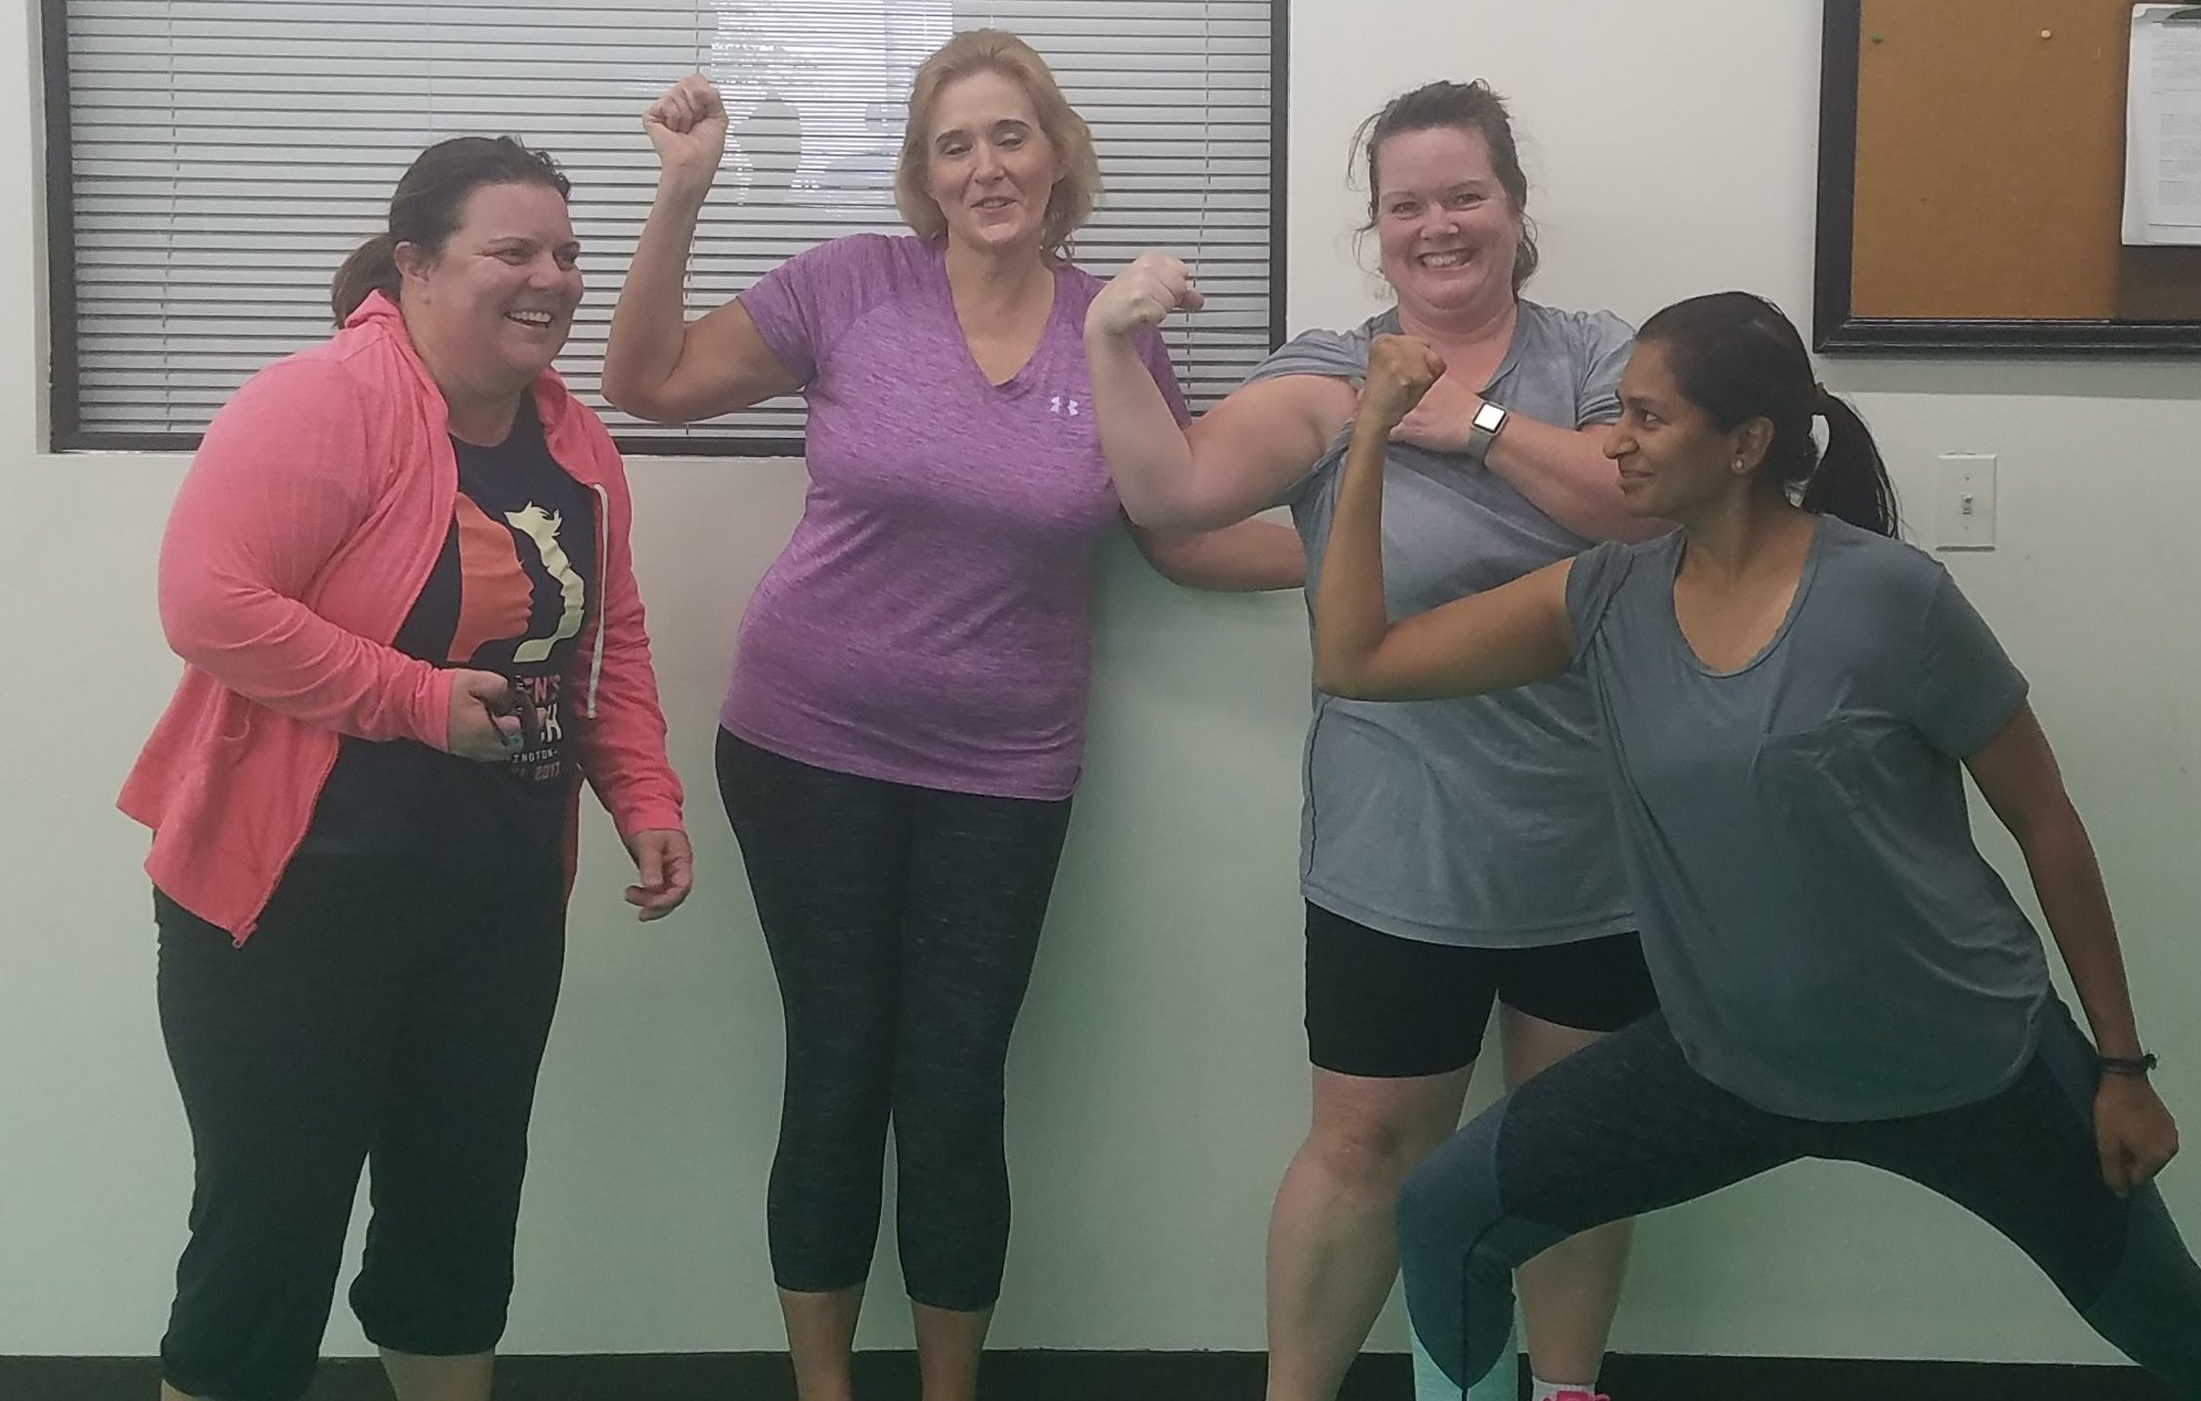 Group Support showing our toned biceps!